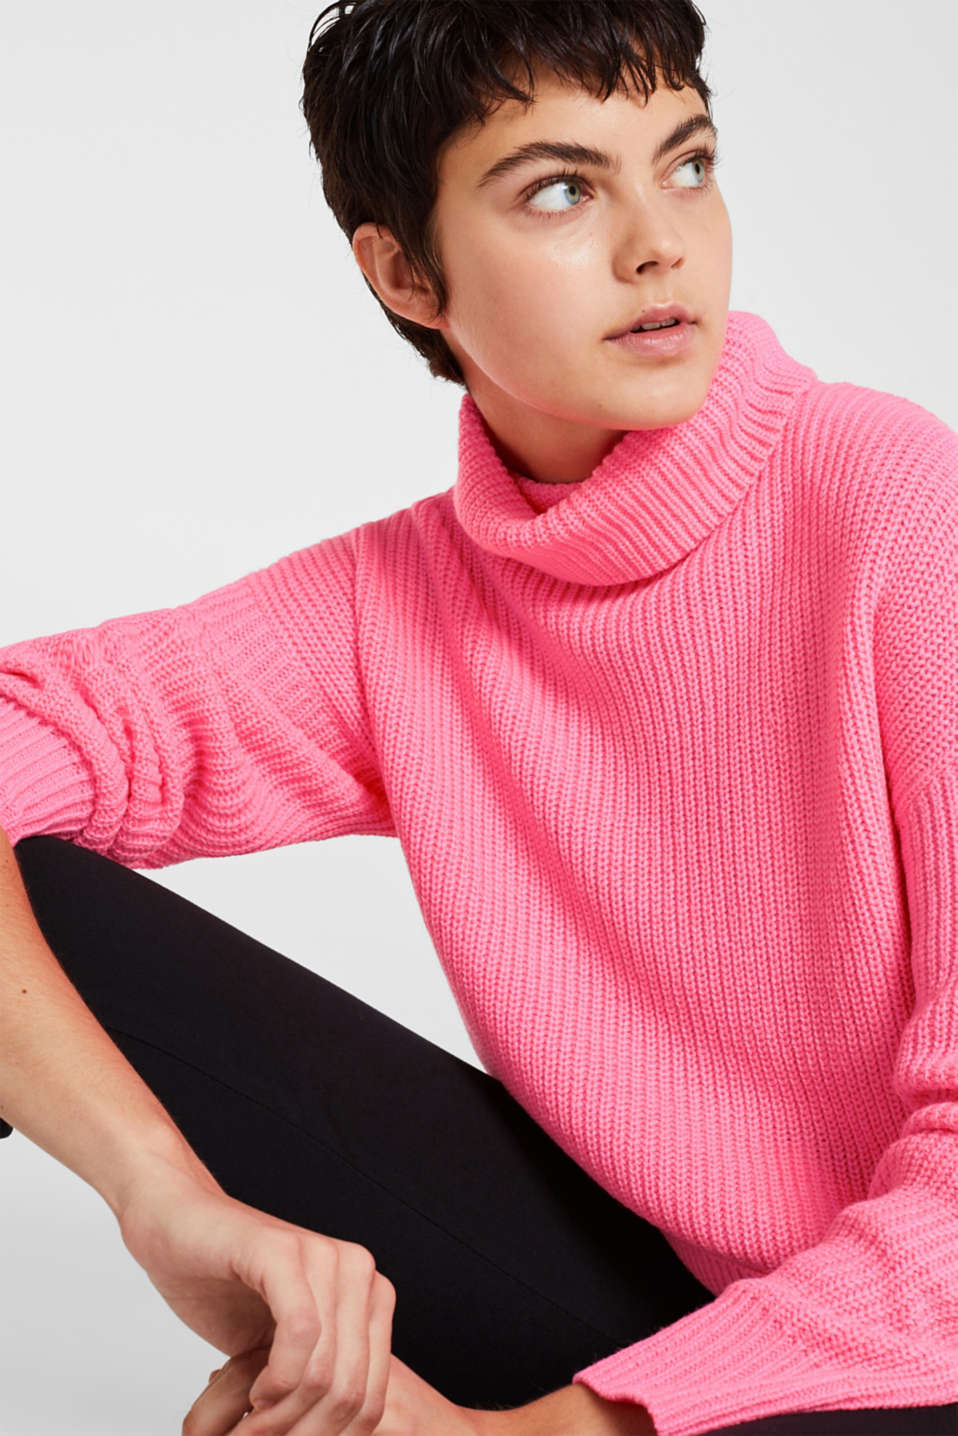 NEON jumper, plain-coloured or with stripes